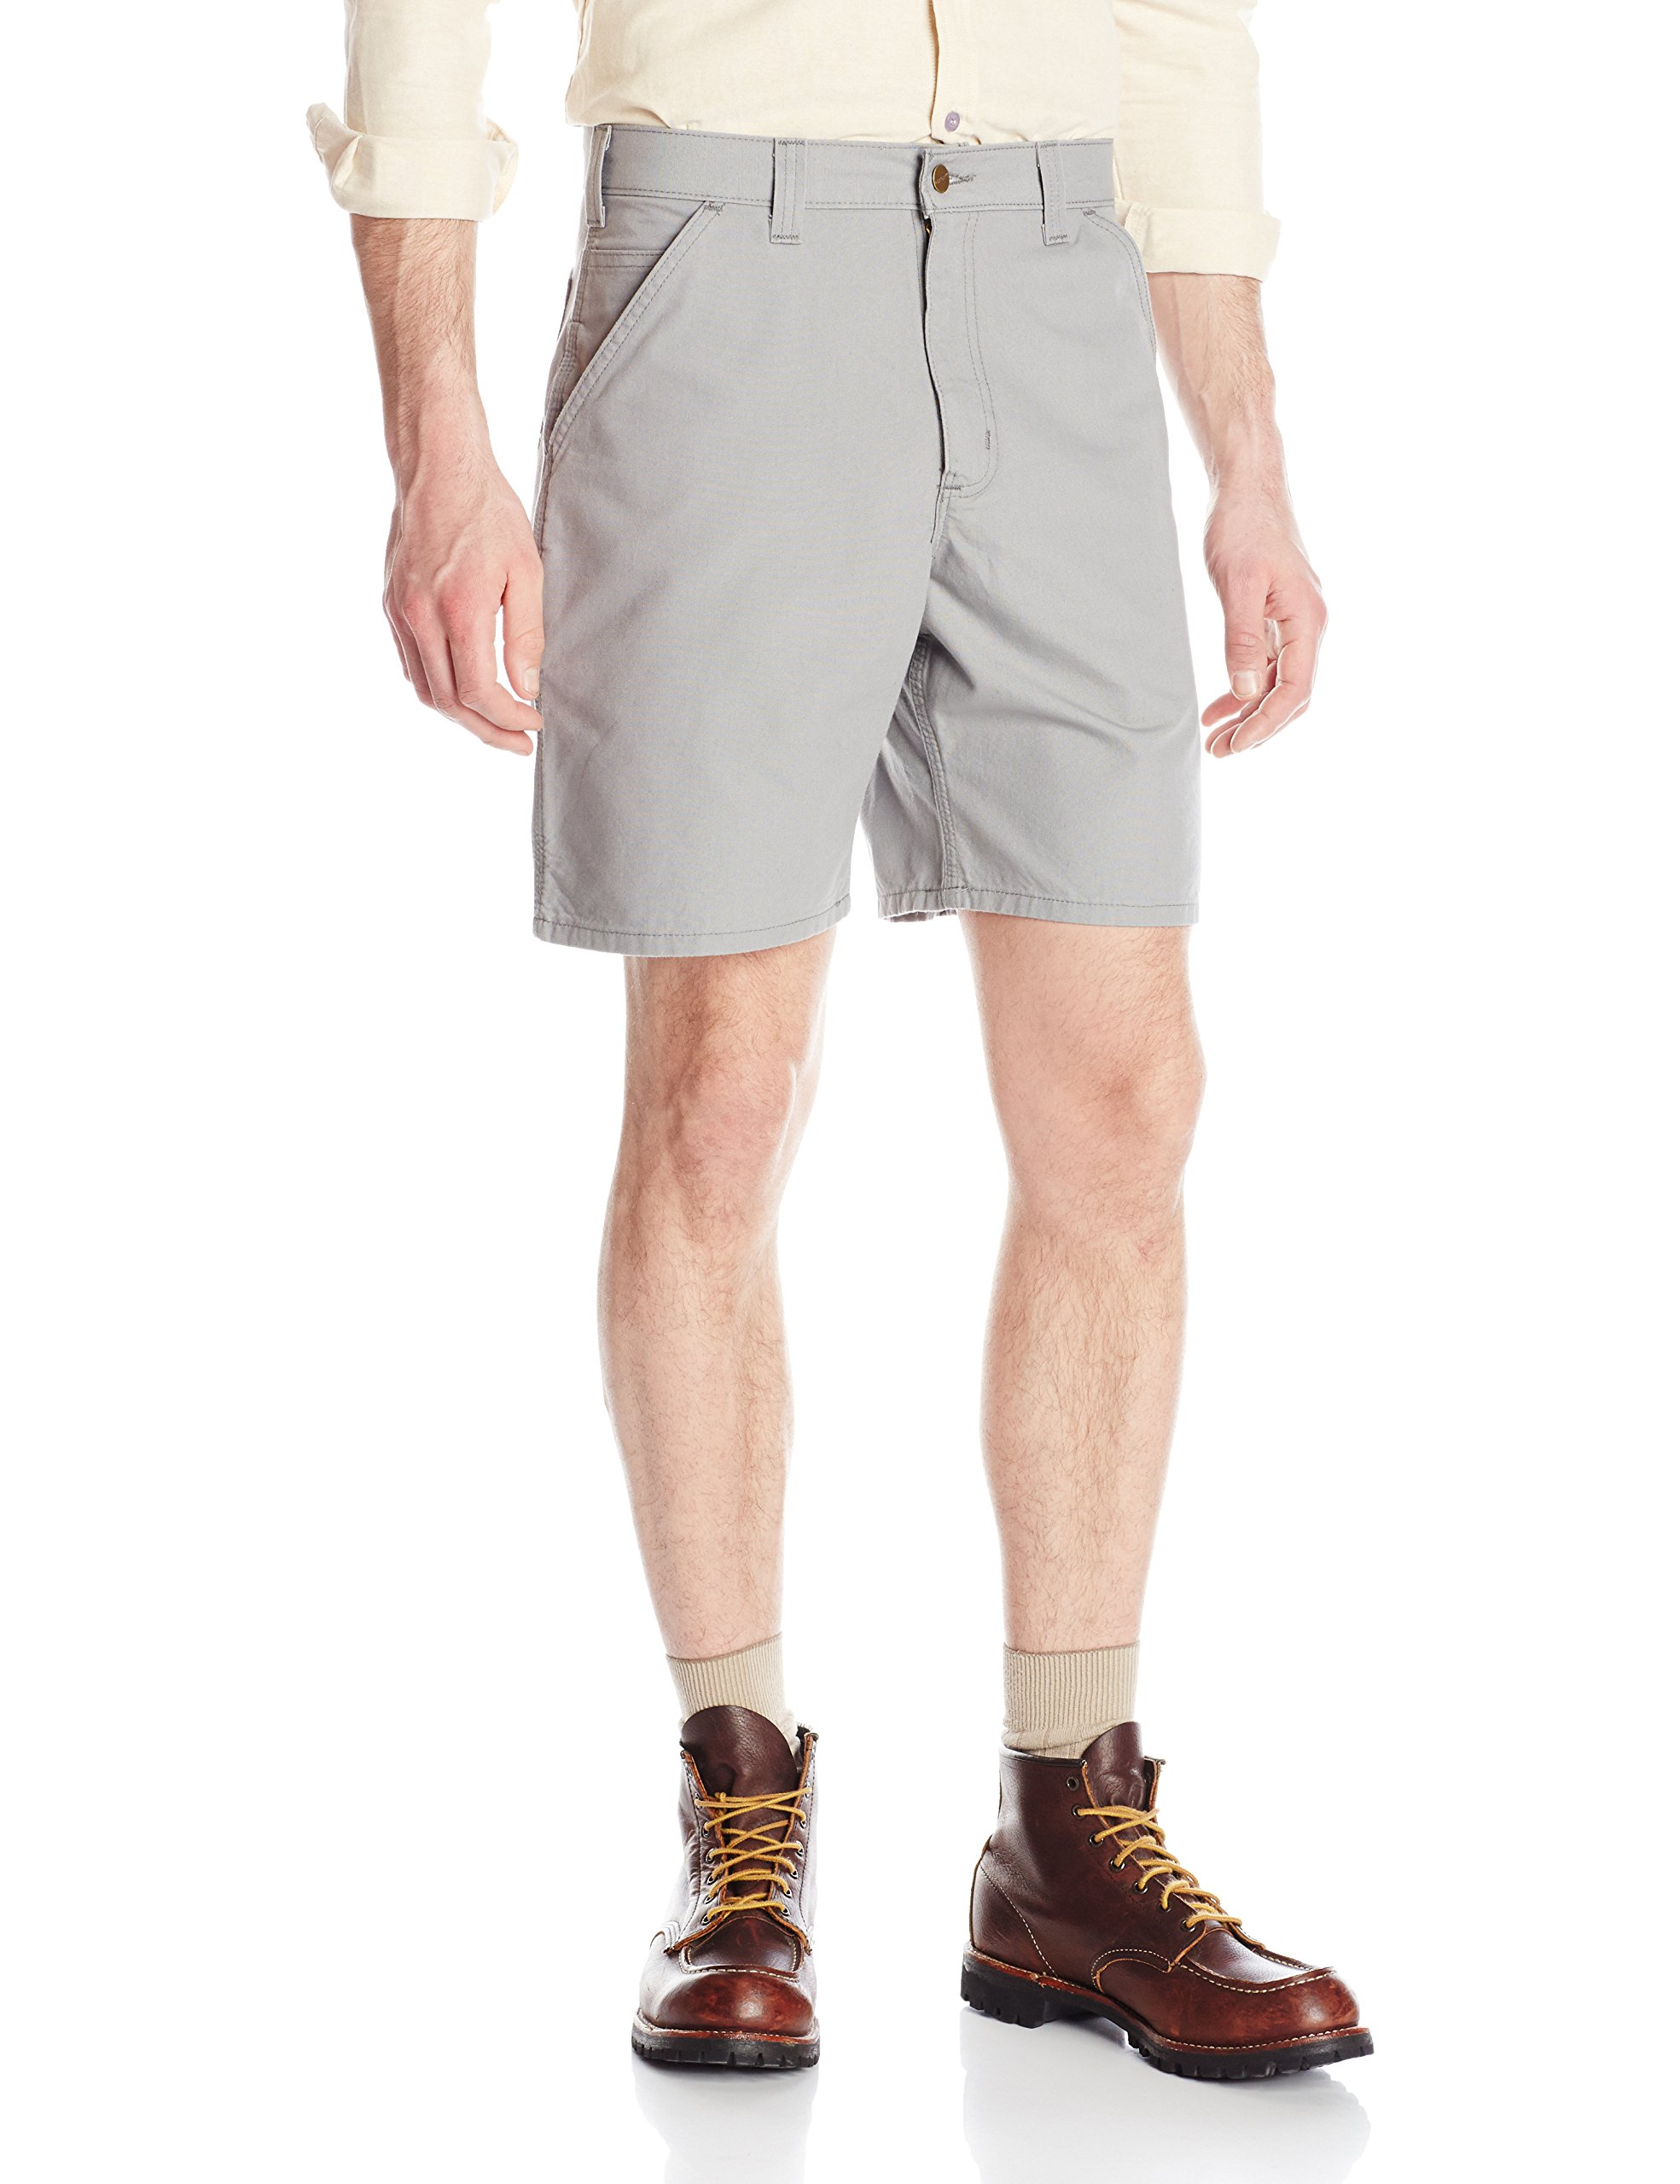 Carhartt Men's Canvas Utility Work Short, Asphalt, 36